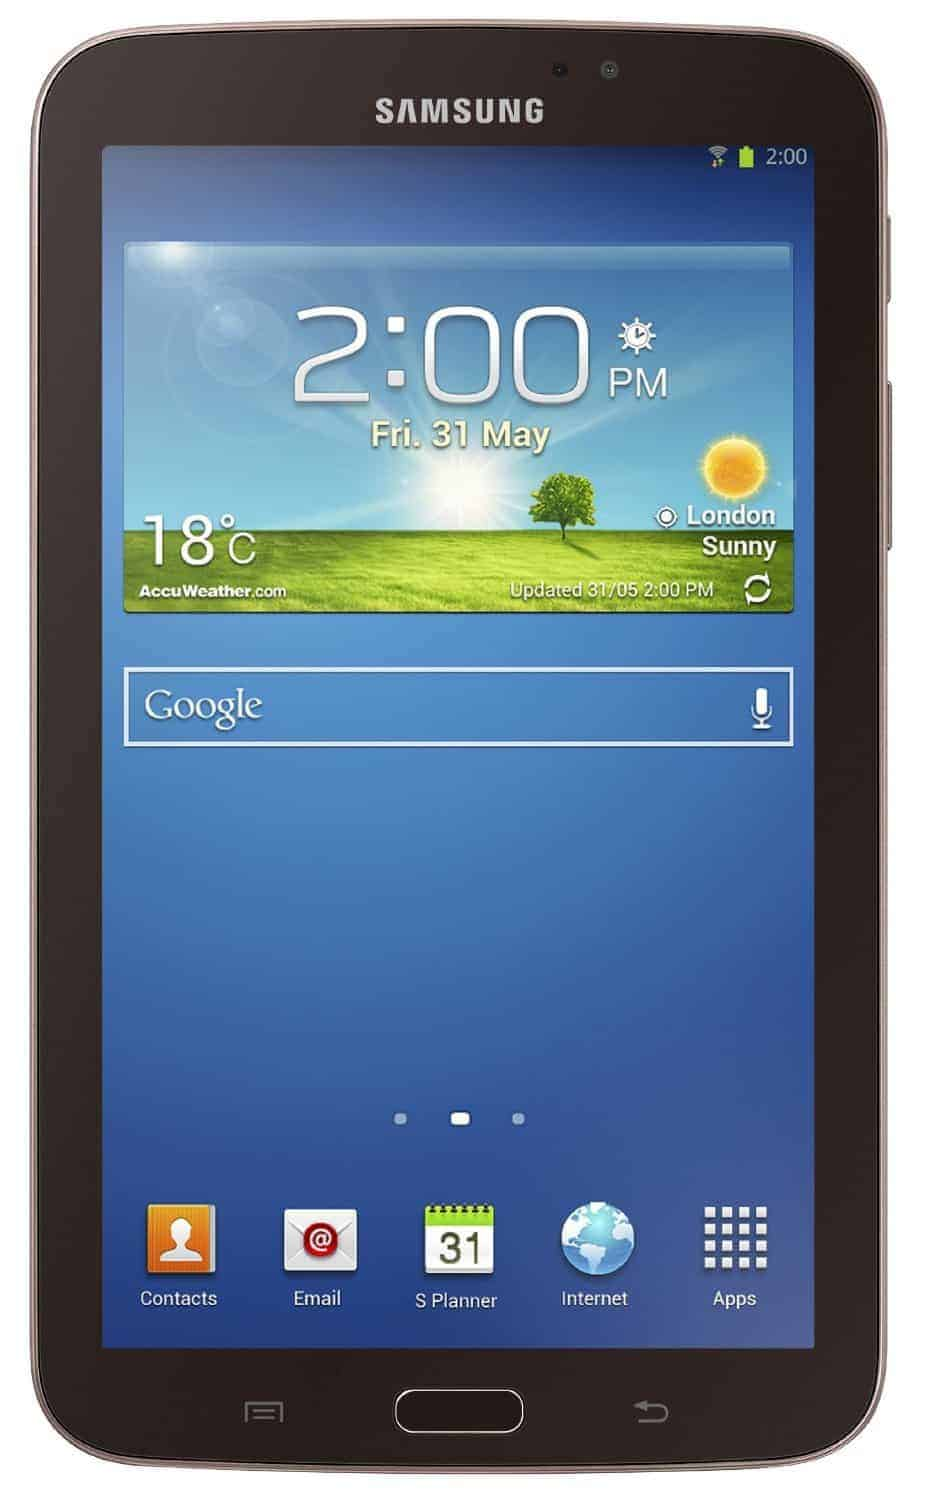 Samsung Galaxy Tab 3 Review